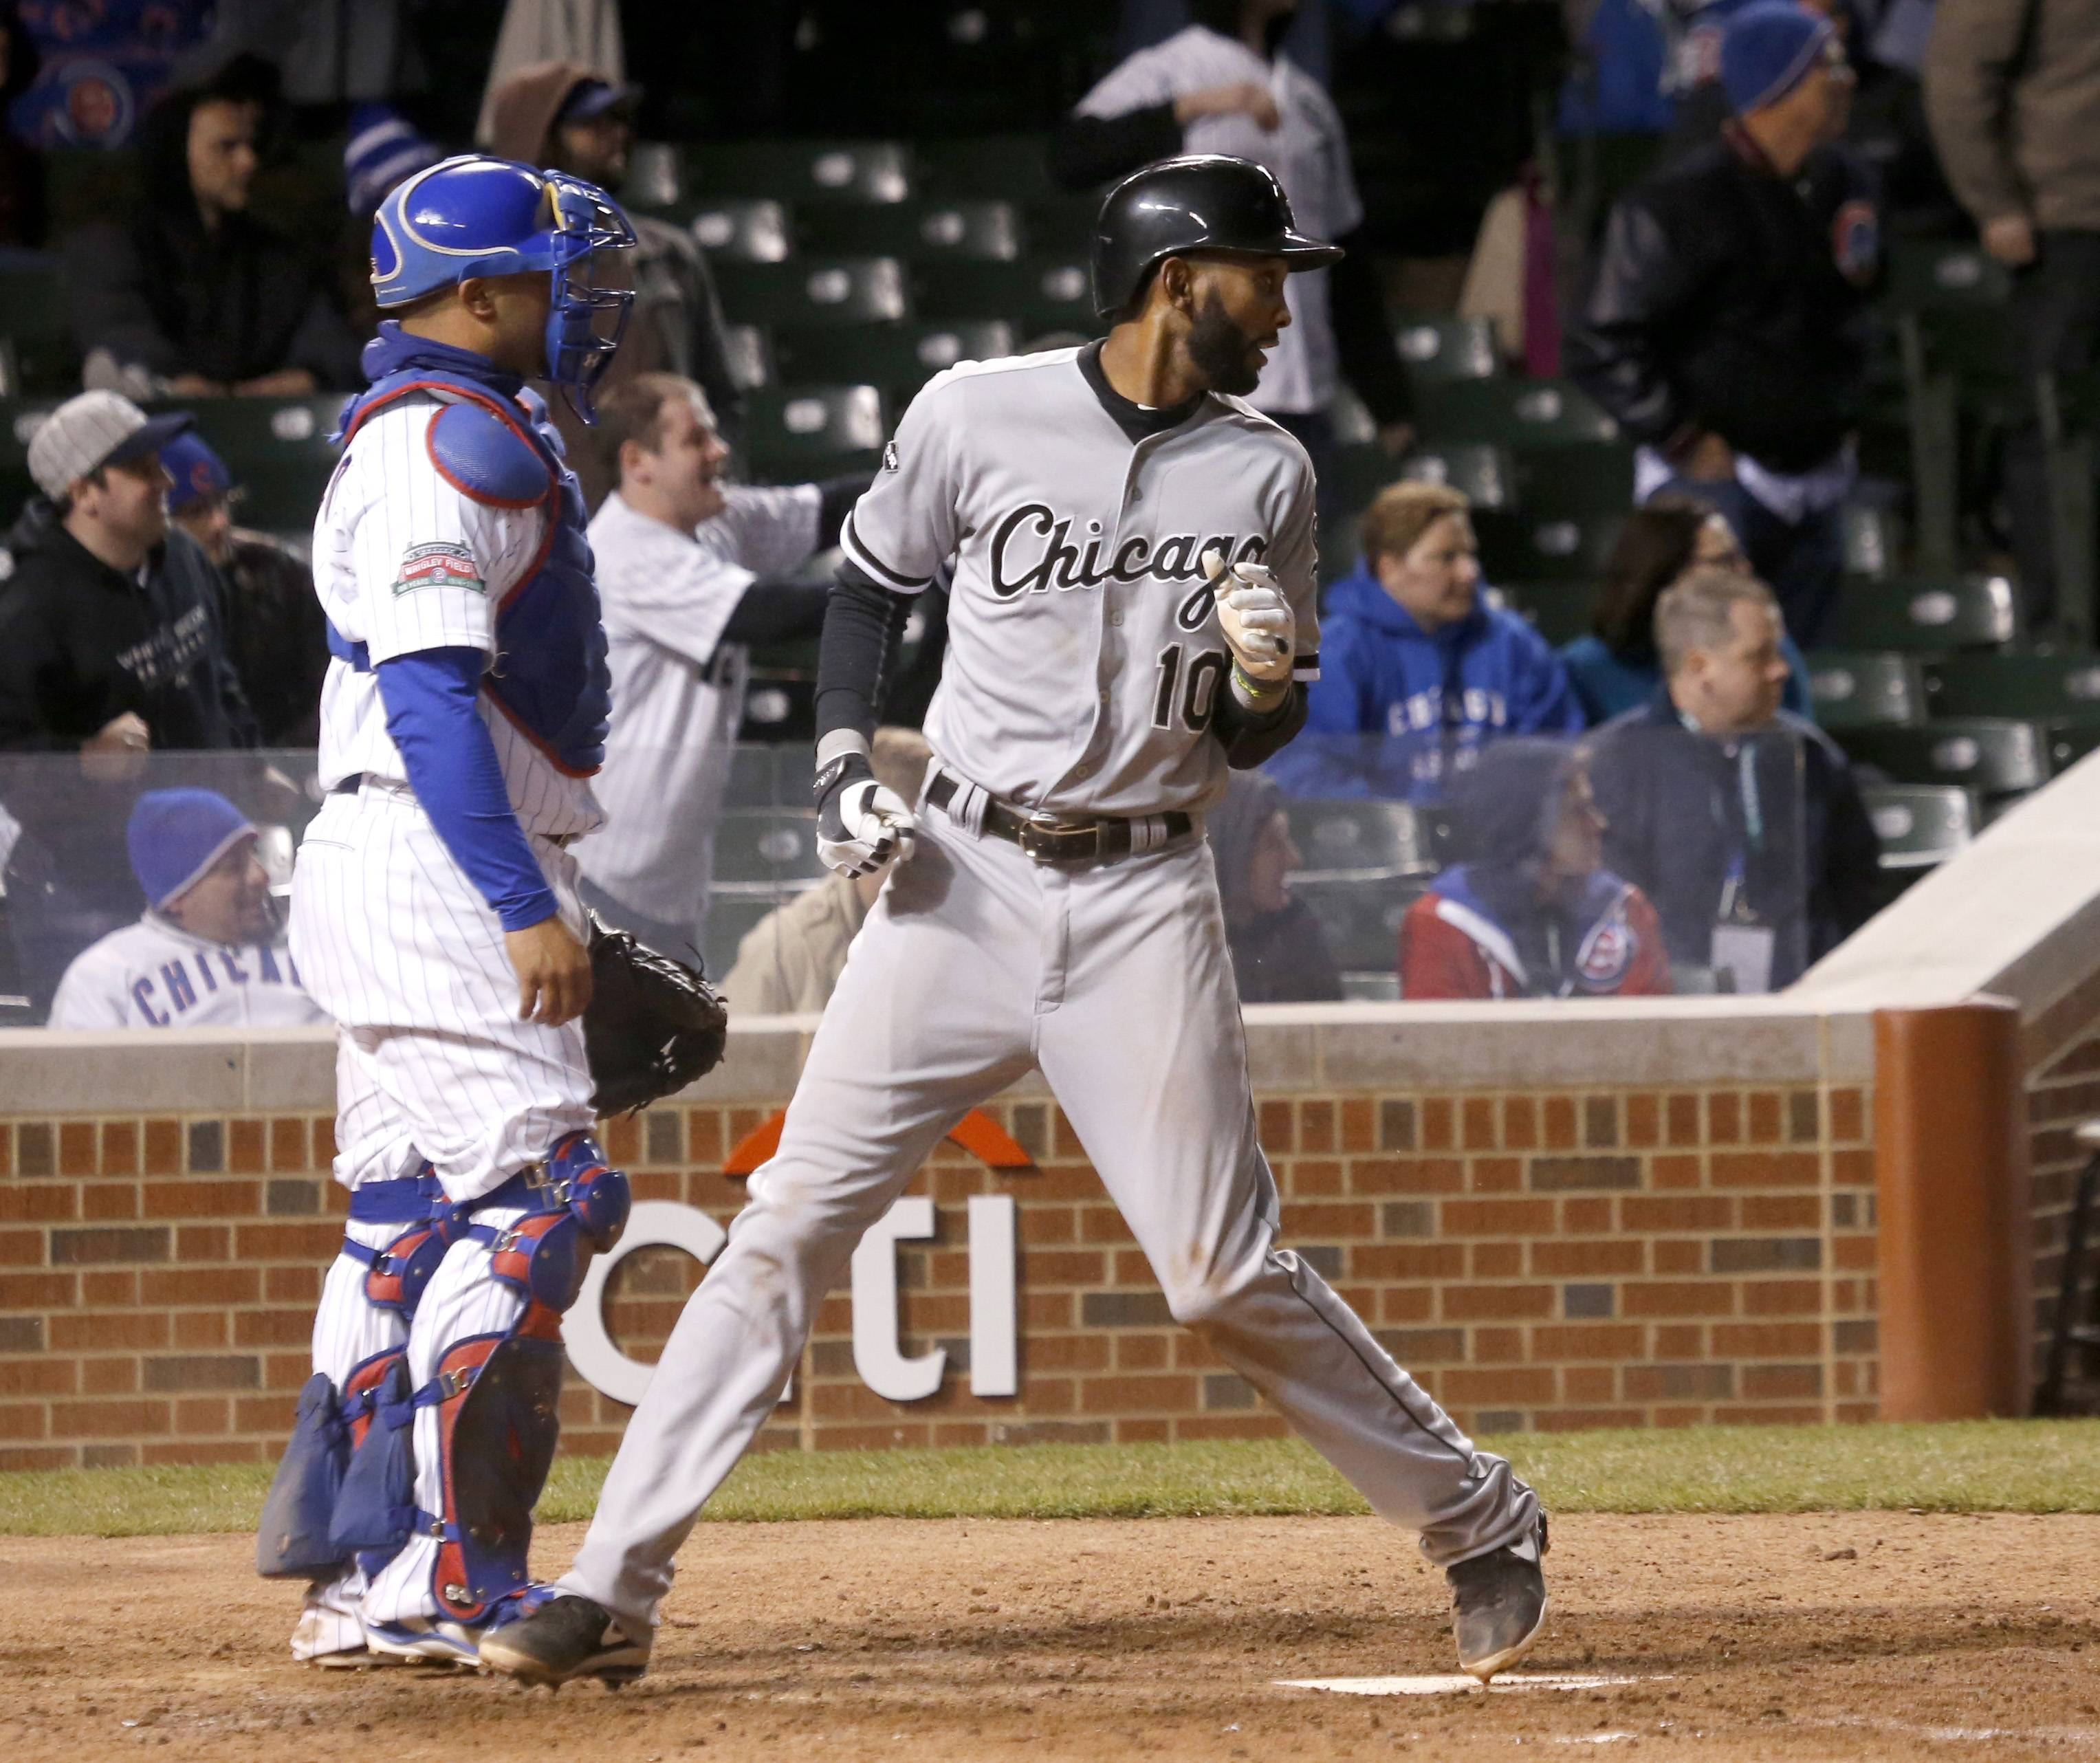 Alexei Ramirez looks back after scoring on a double by Marcus Semien to break a 1-1 tie in the 12th inning Monday night at Wrigley Field.